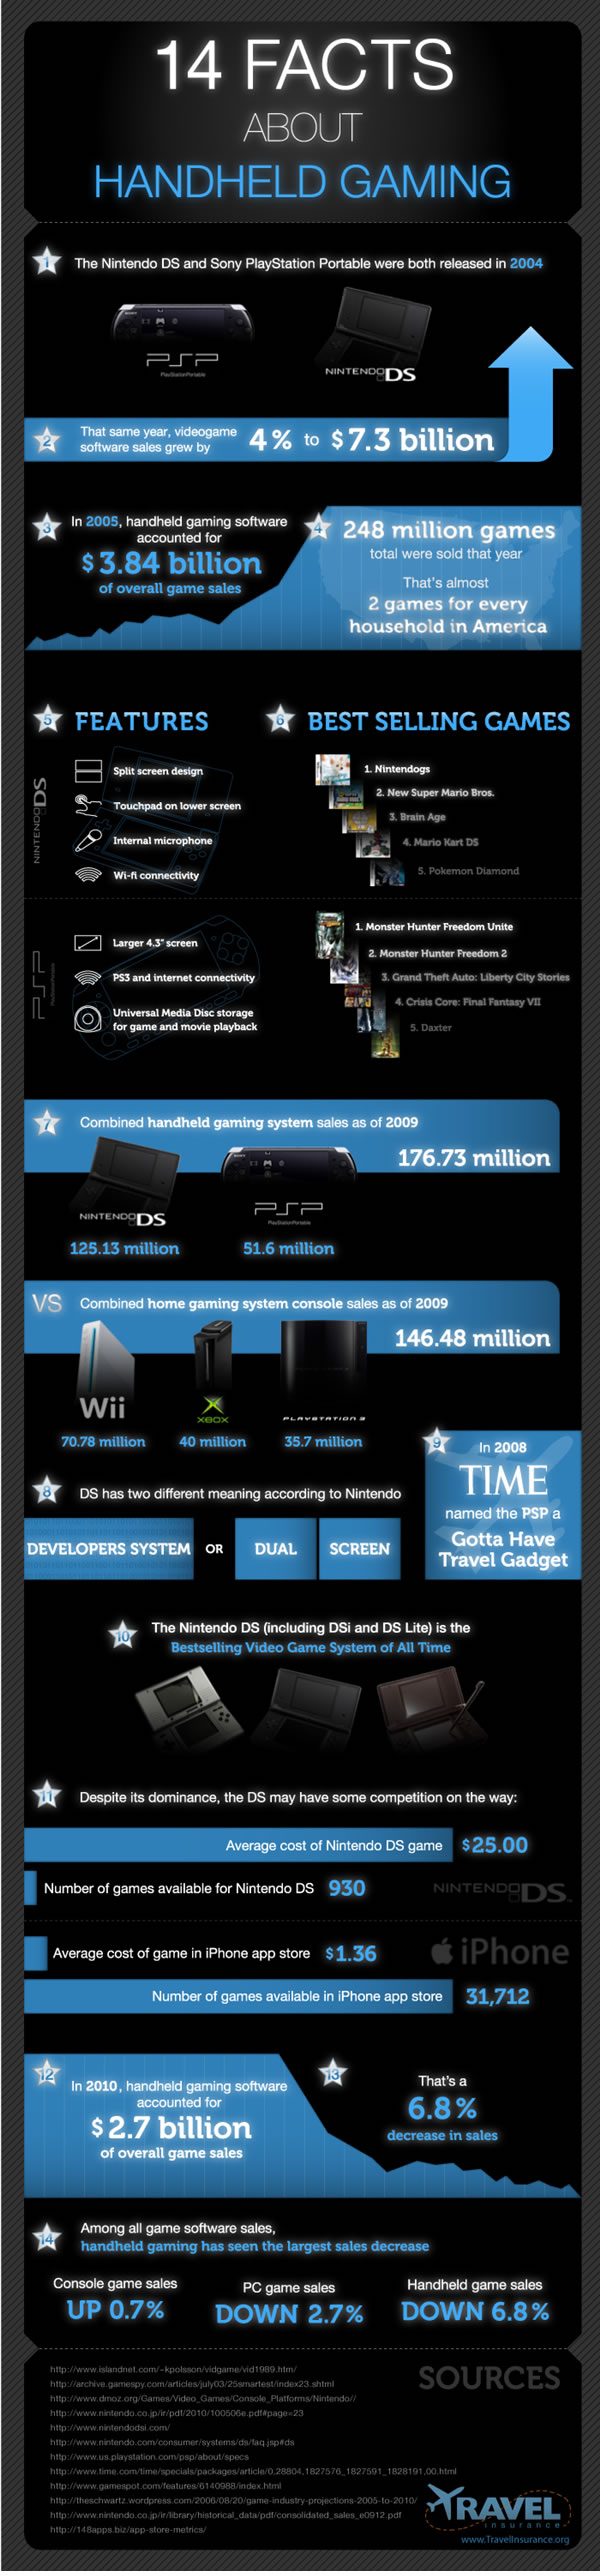 「14 FACTS ABOUT HANDHELD GAMING」